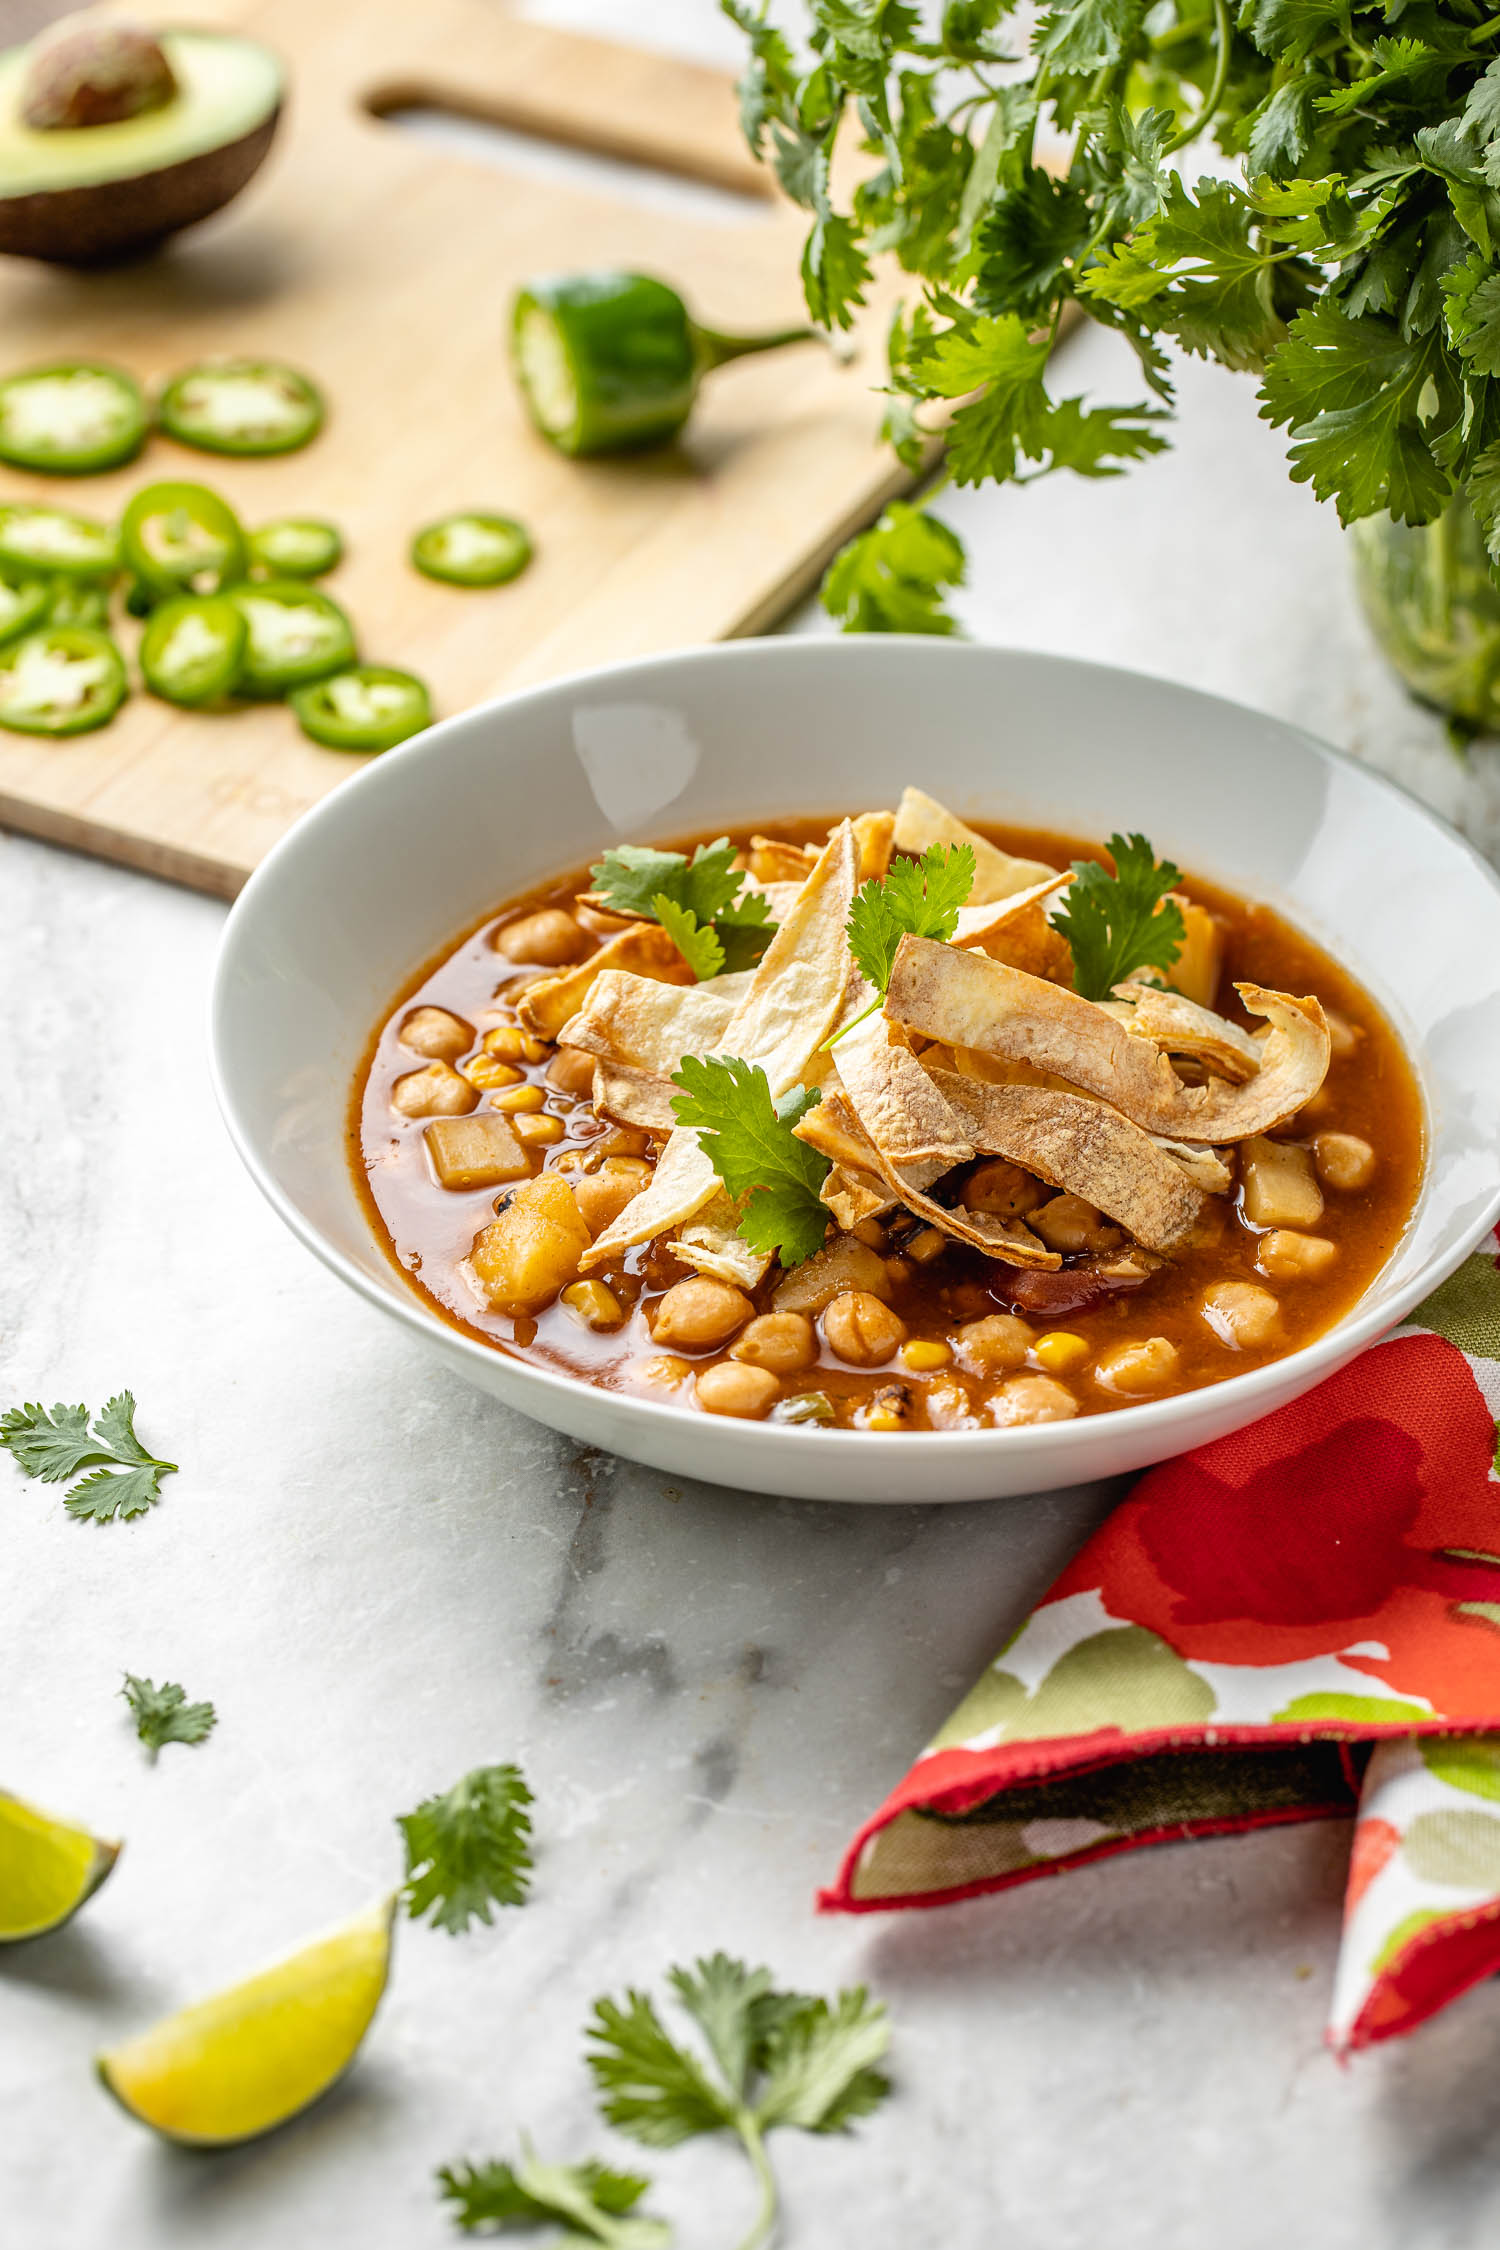 white bowl of authentic tortilla soup recipe topped with strips of corn tortilla chips and cilantro, lime wedges, green herbs, and jalapeno peppers and avocado scattered around the soup, red napkin